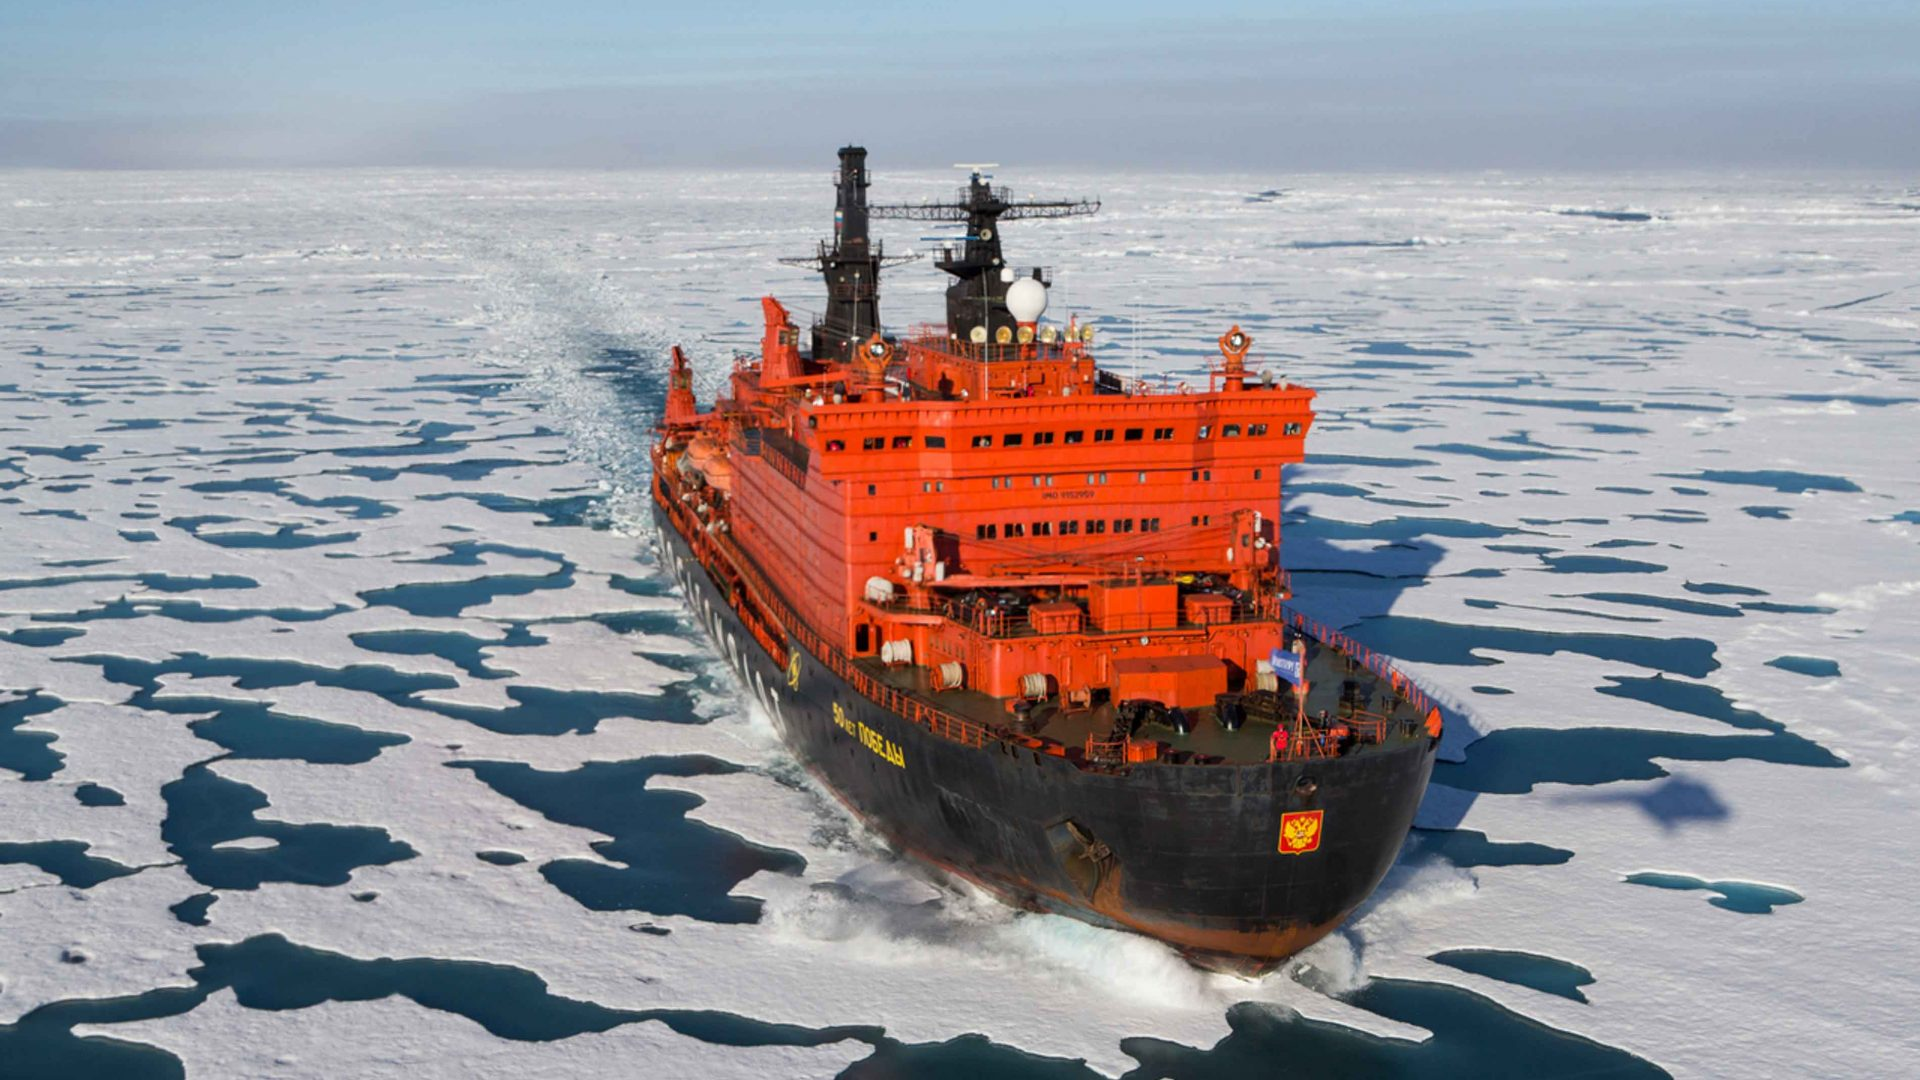 Icebreaker boat en route to the North Pole.